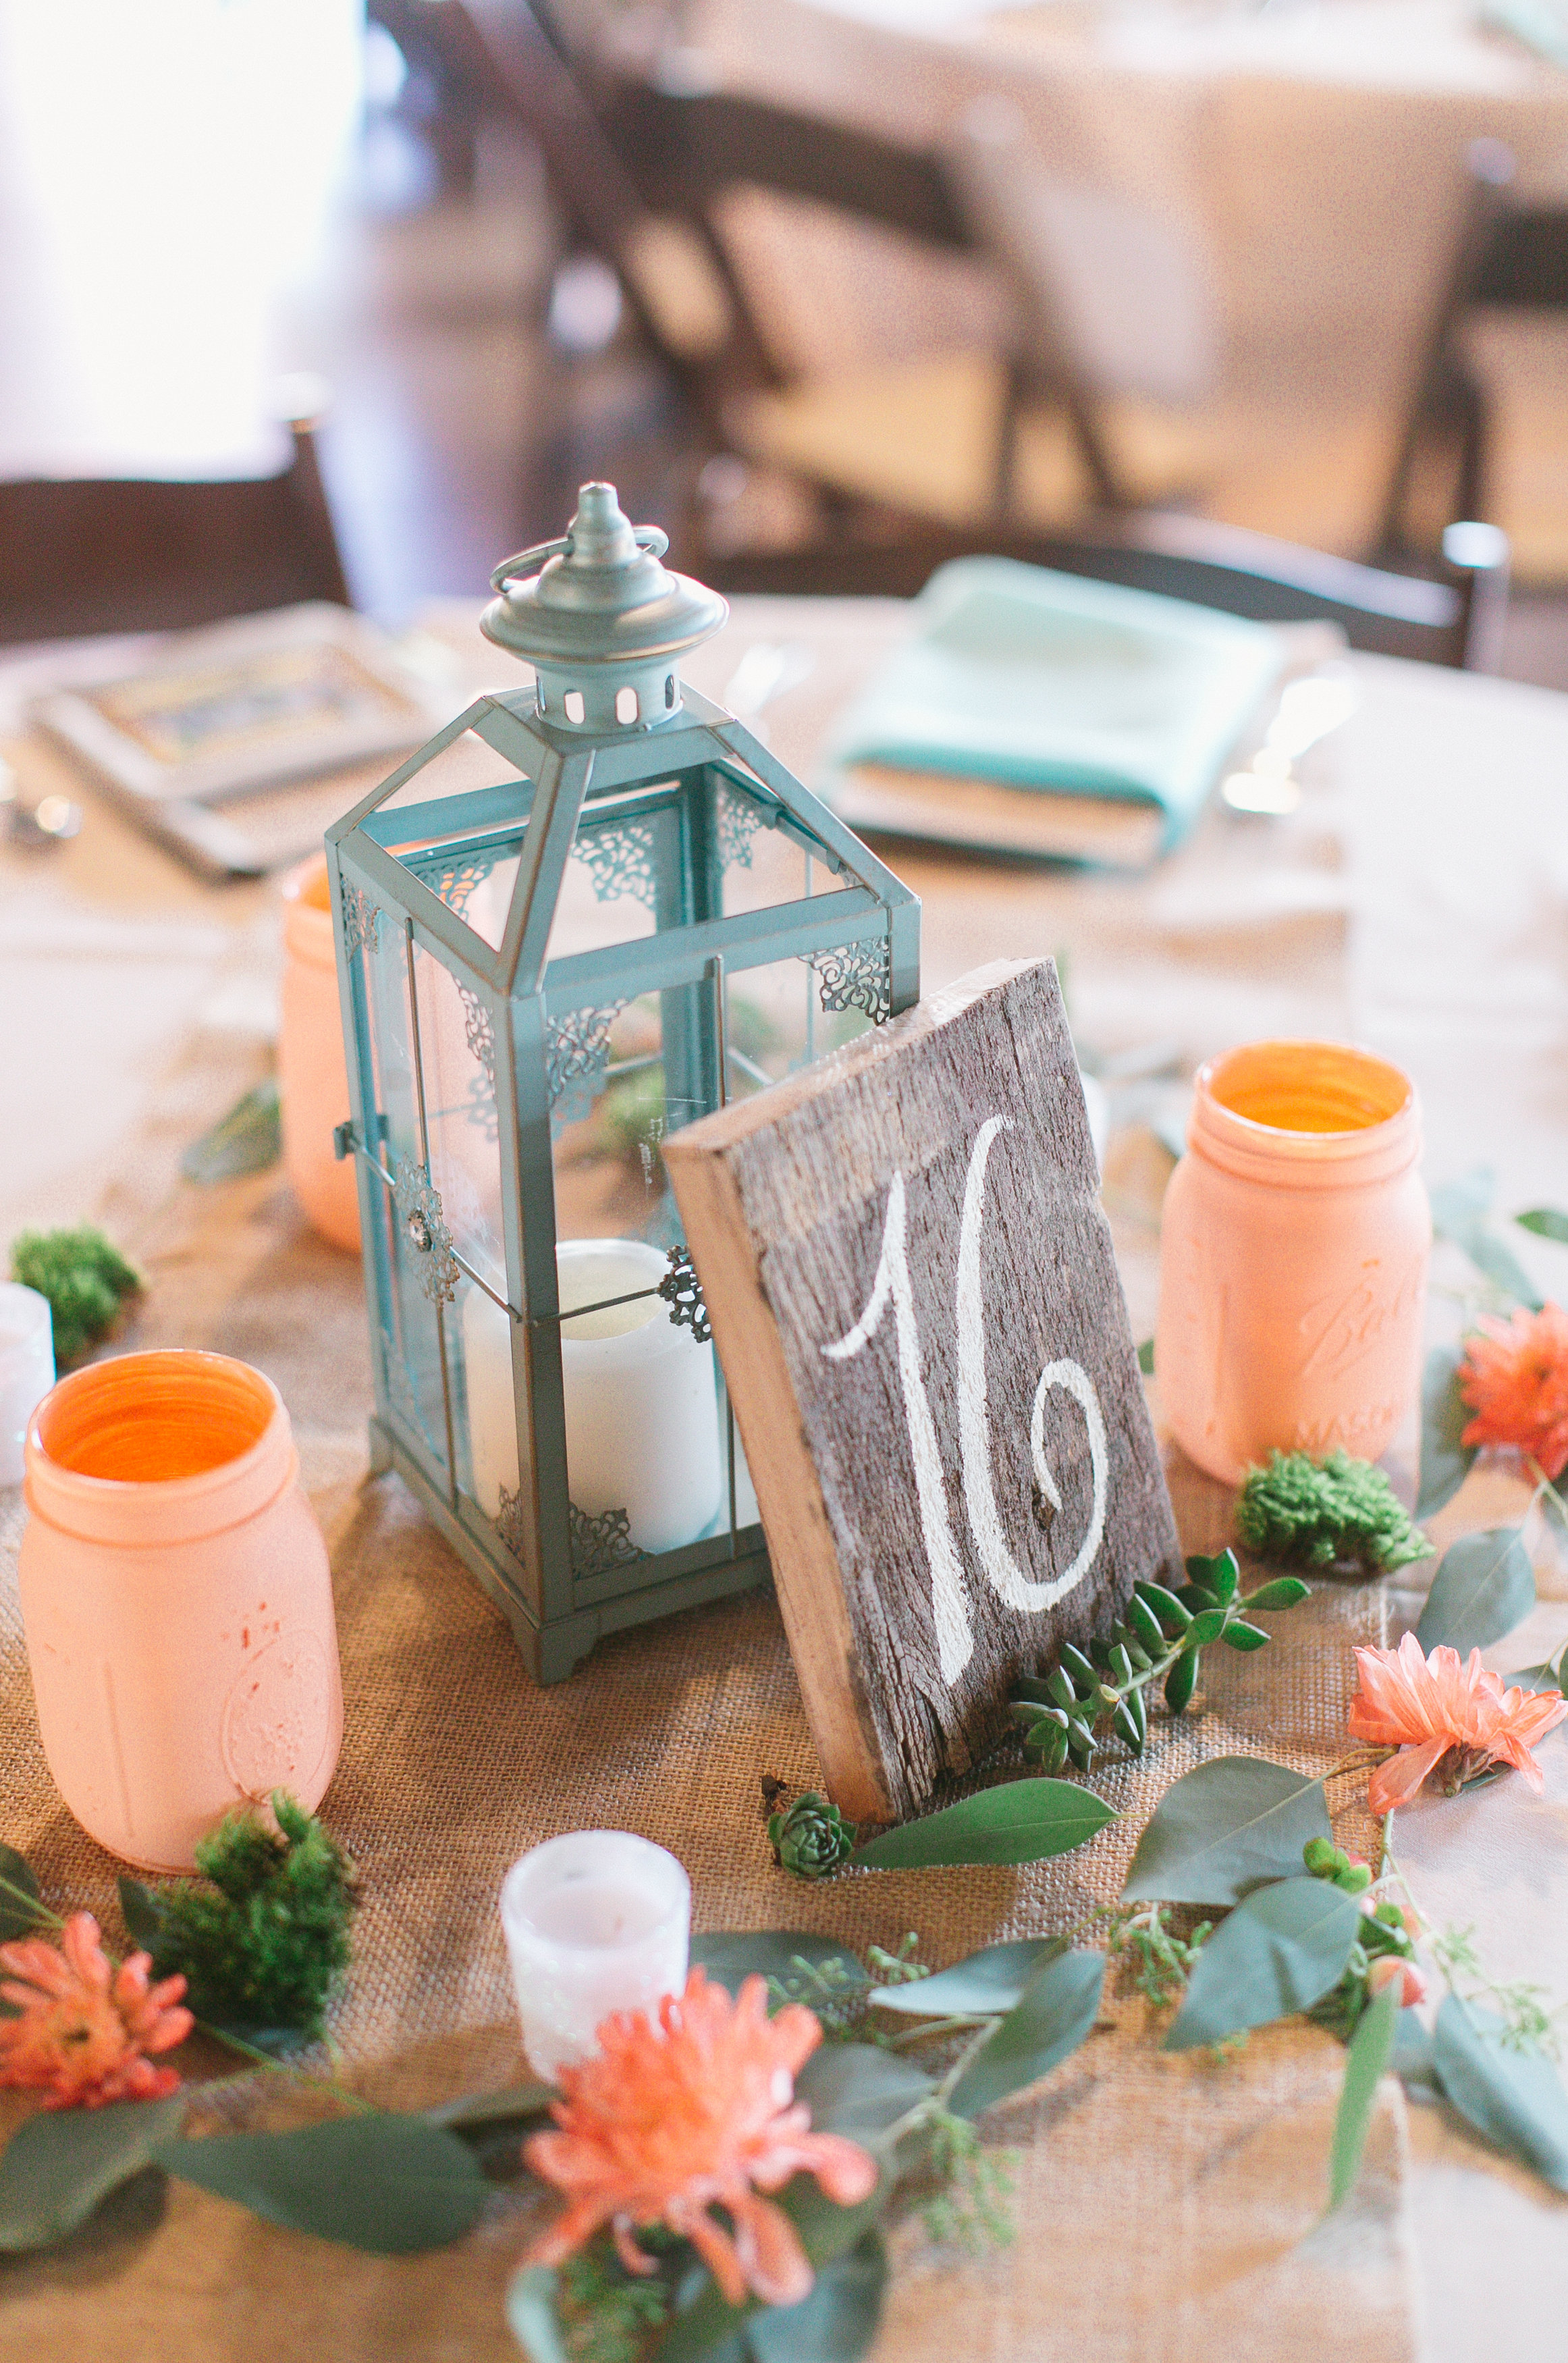 View More: http://wearethemitchells.pass.us/gliebewedding